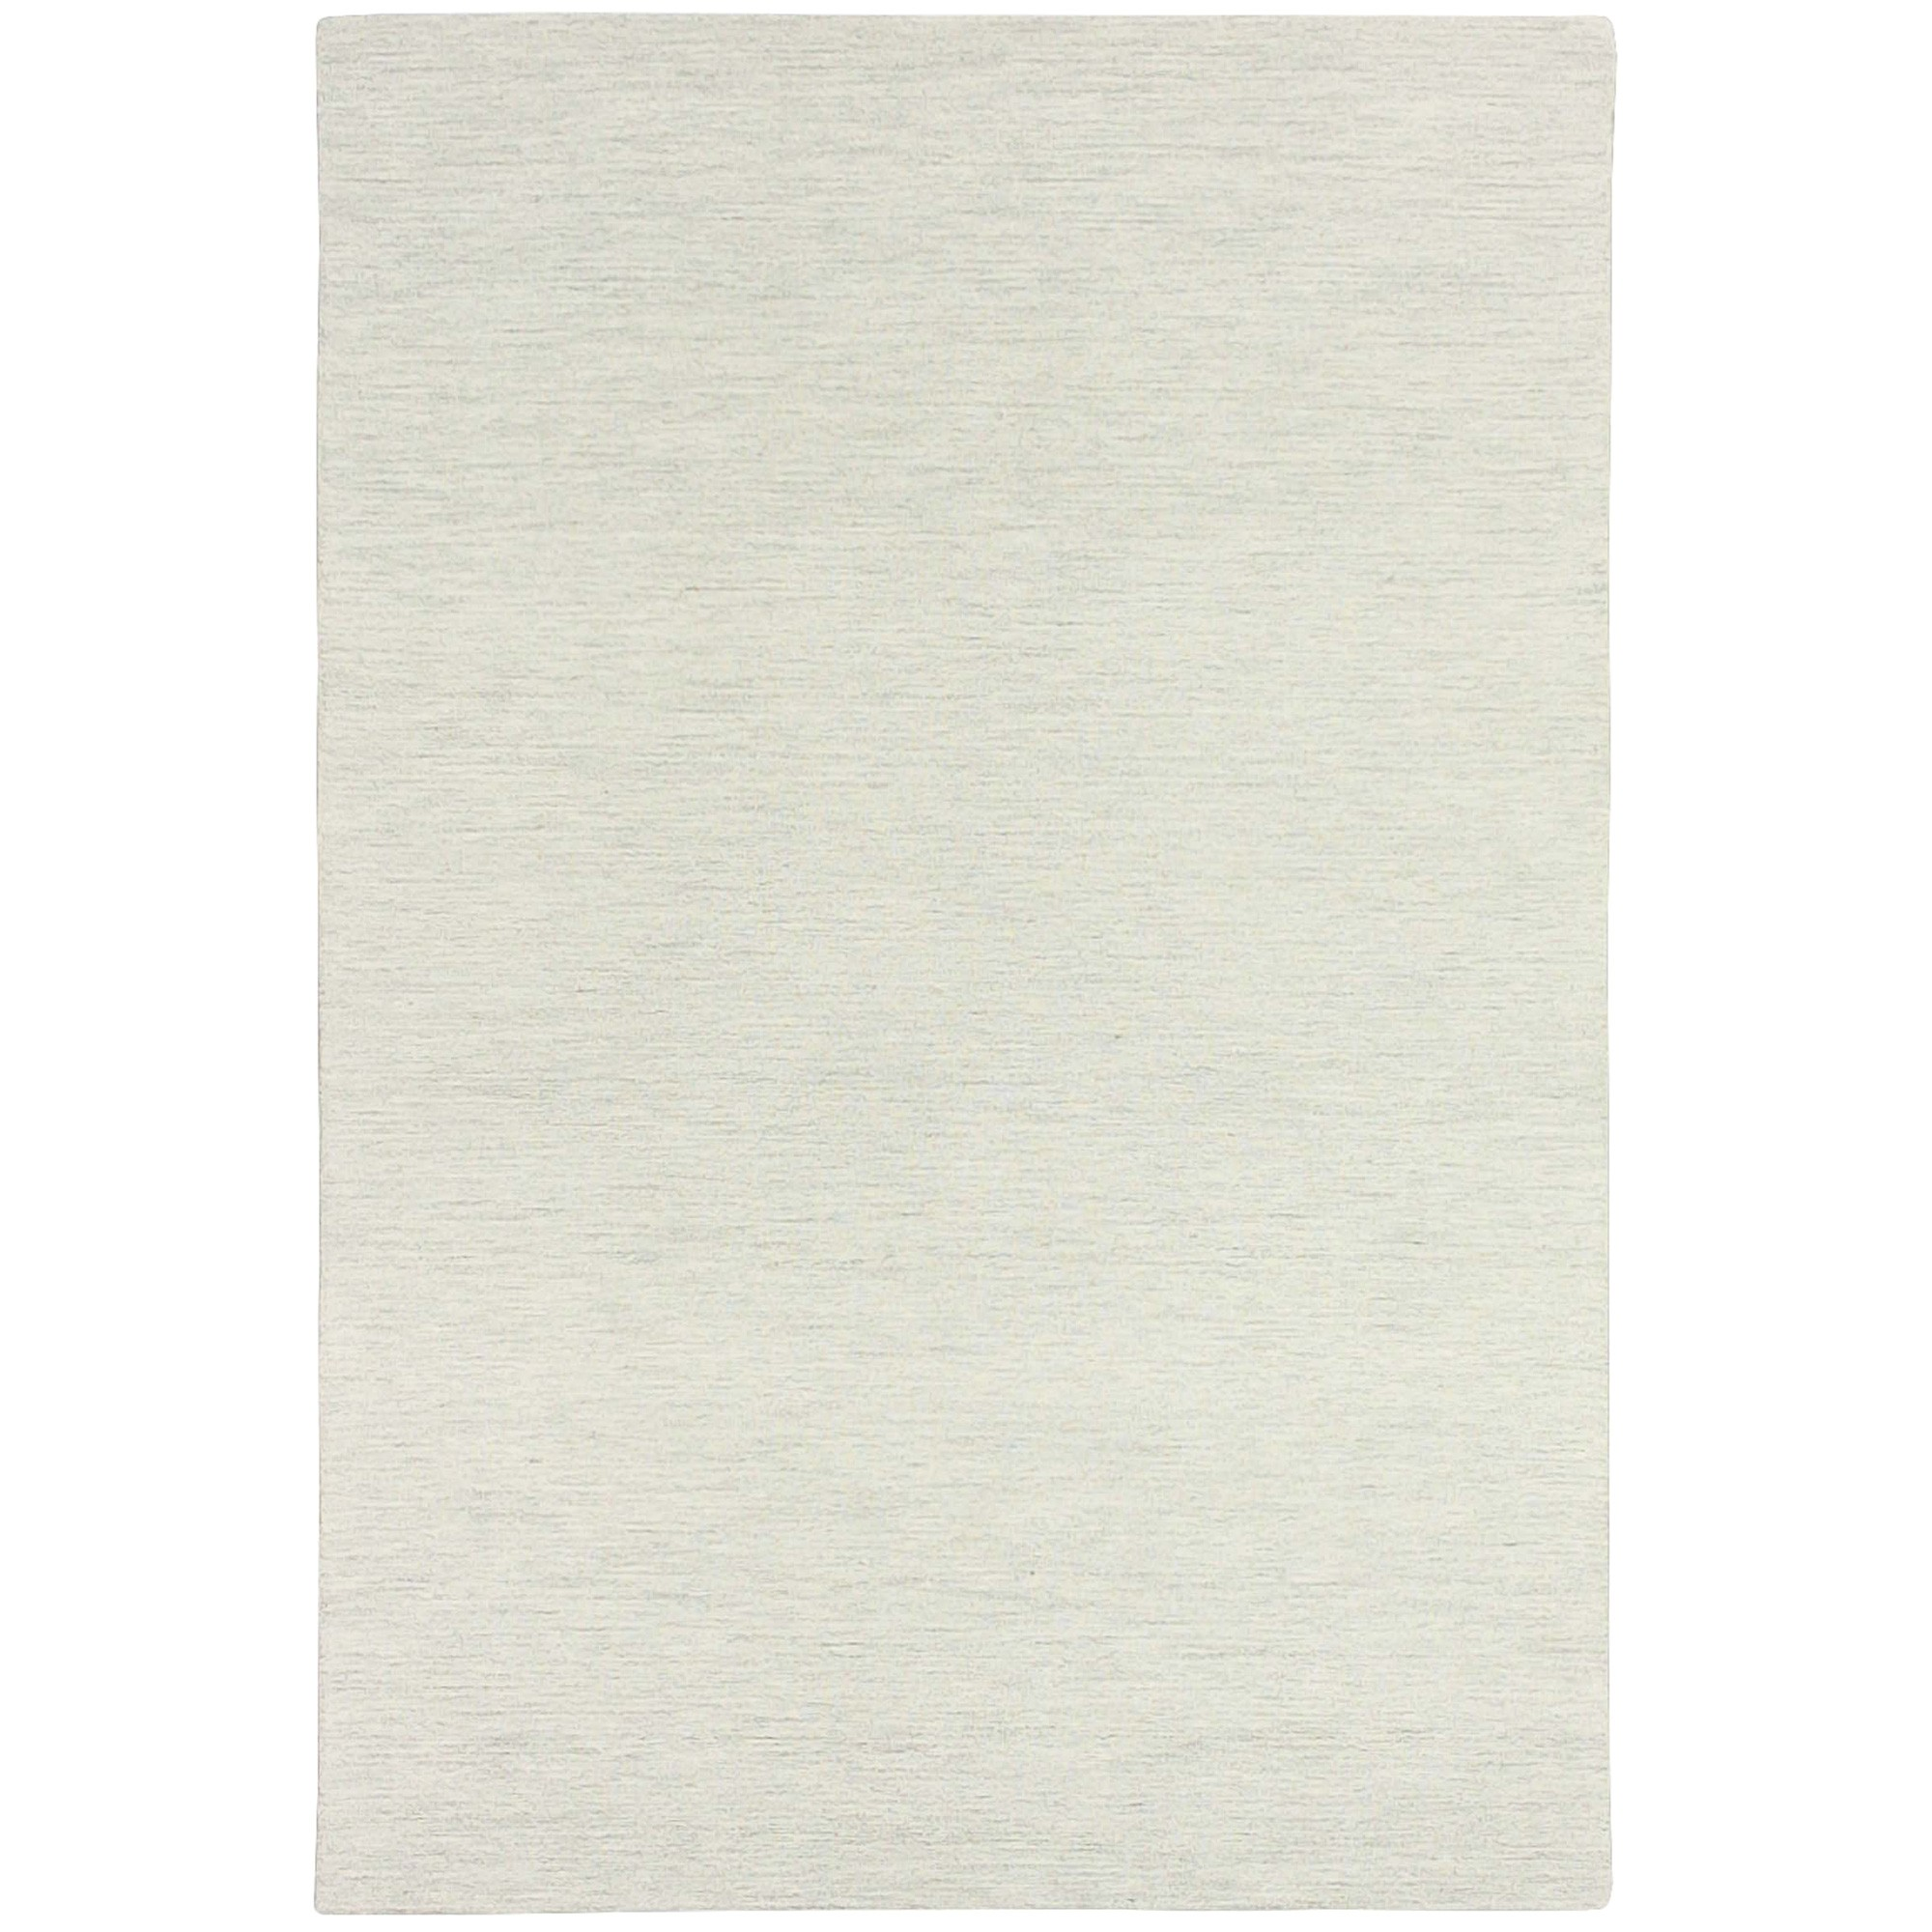 Marled Hand Tufted Wool Rug, 250x300cm, Snow